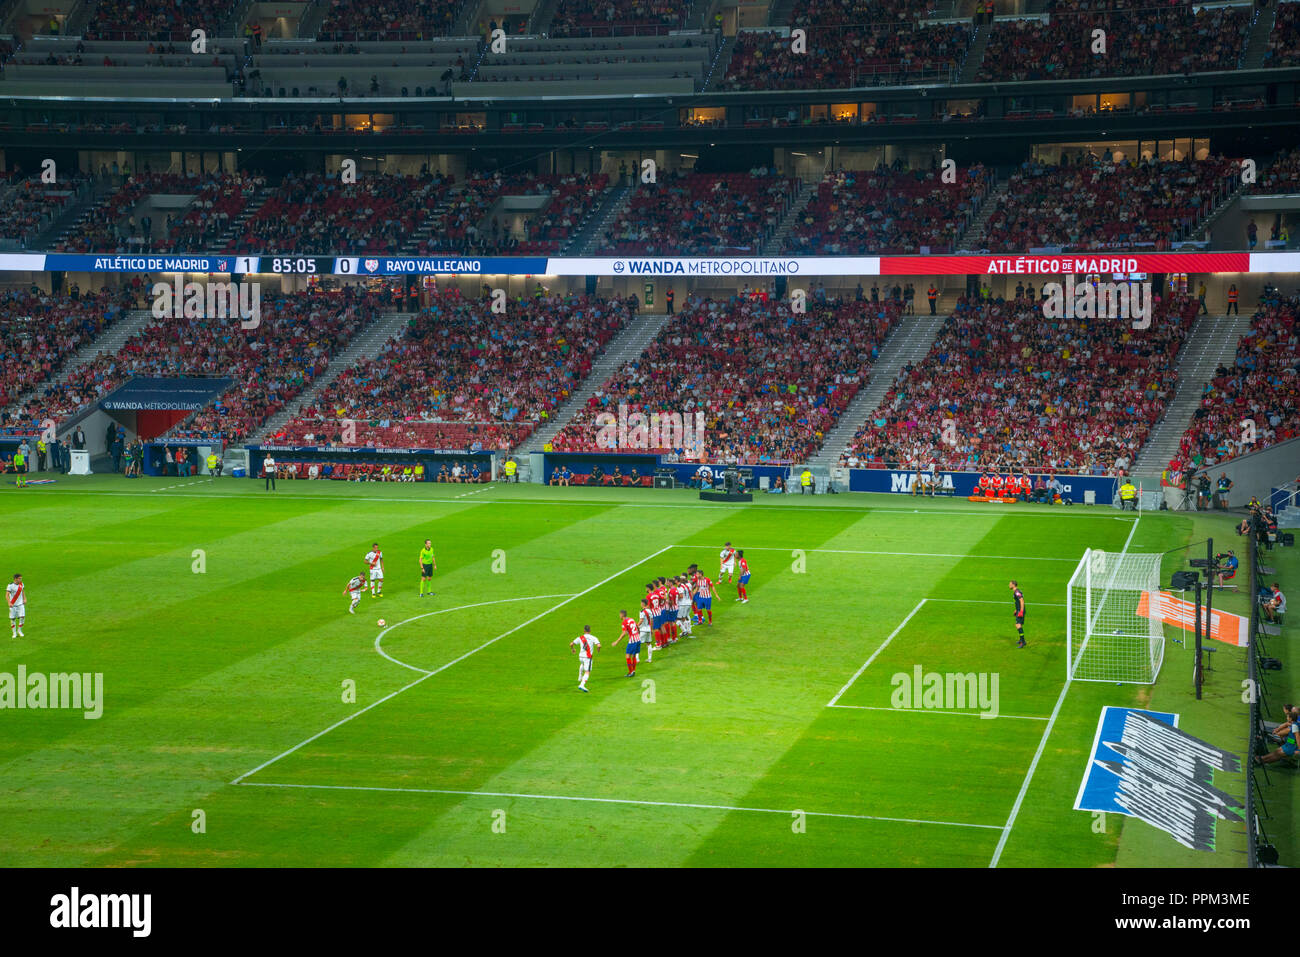 Free kick in football match. Wanda Metropolitano Stadium, Madrid, Spain. - Stock Image